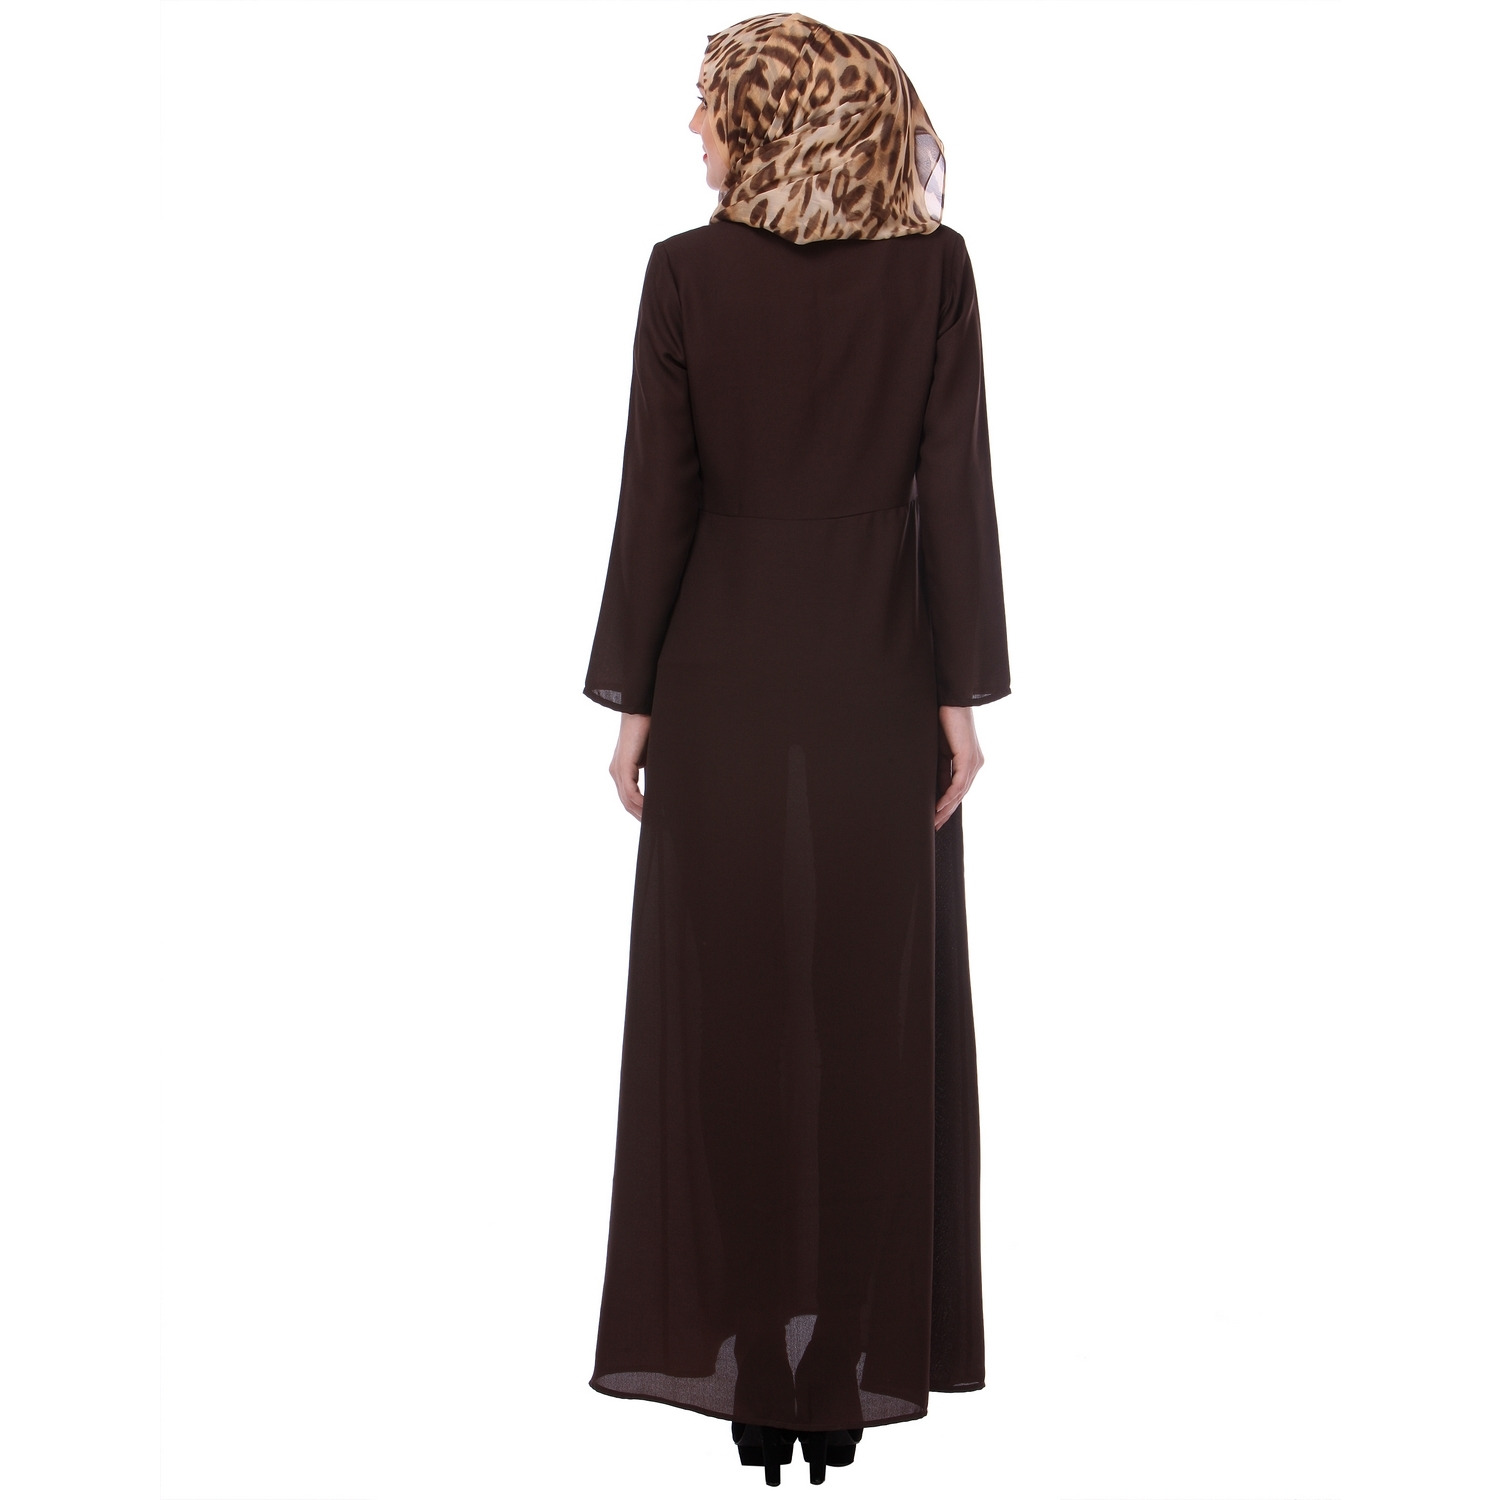 Modest Forever Zipped Brown Formal wear Abaya (Size: L)